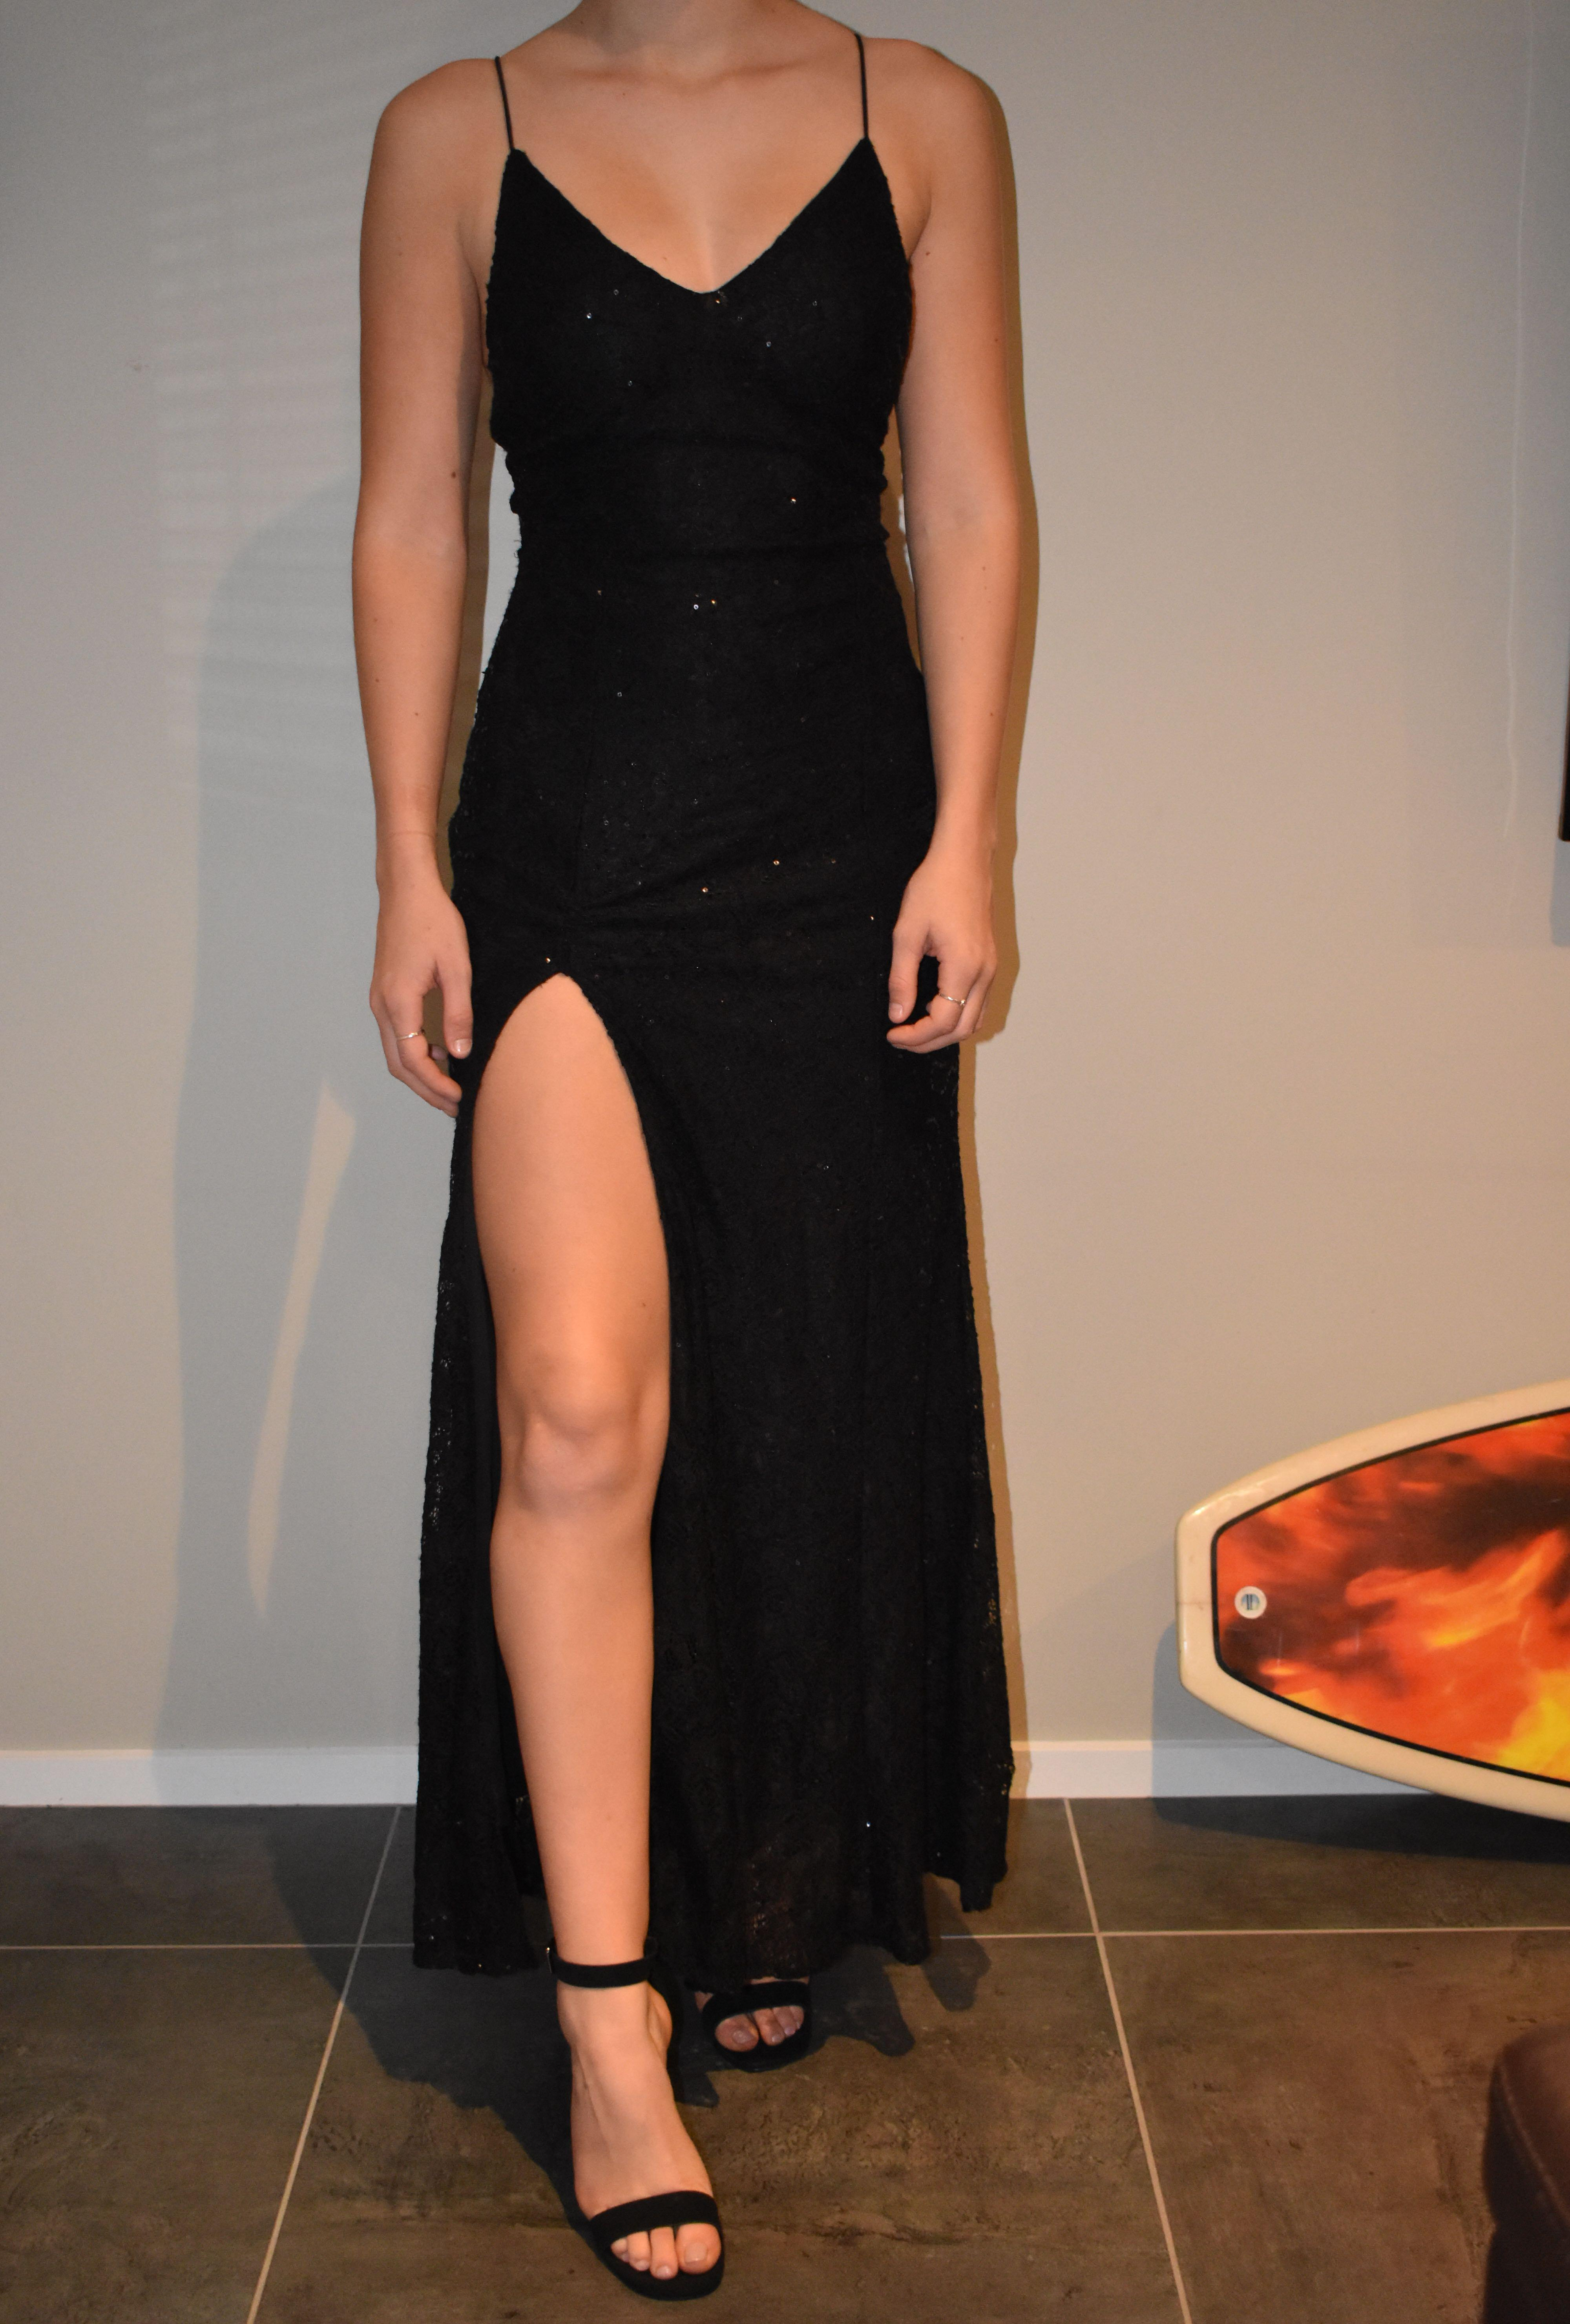 Ball dress and shoes